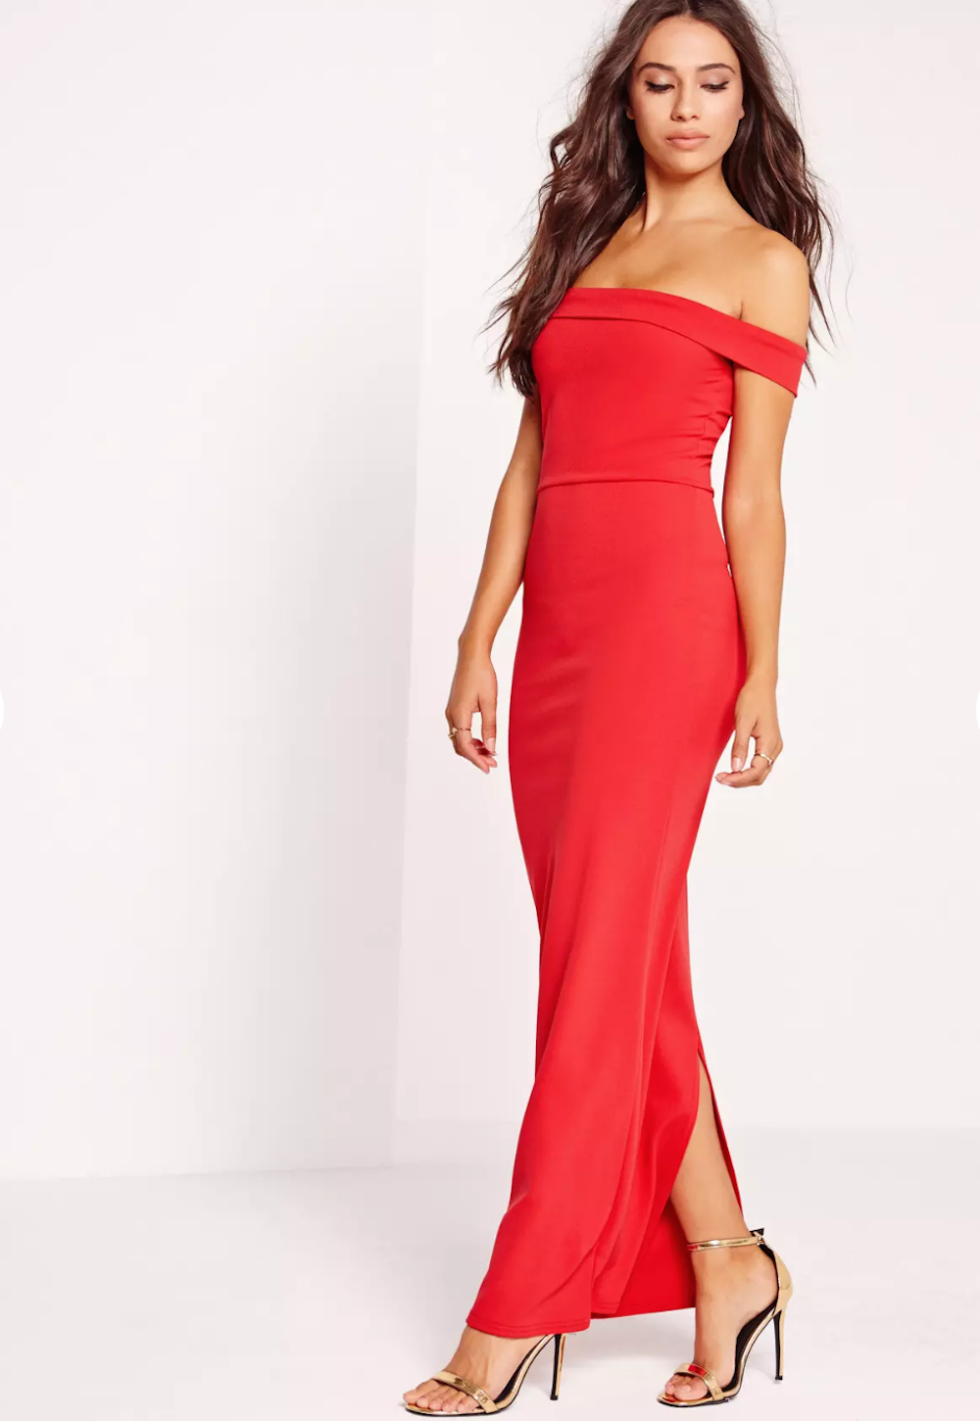 gowns from